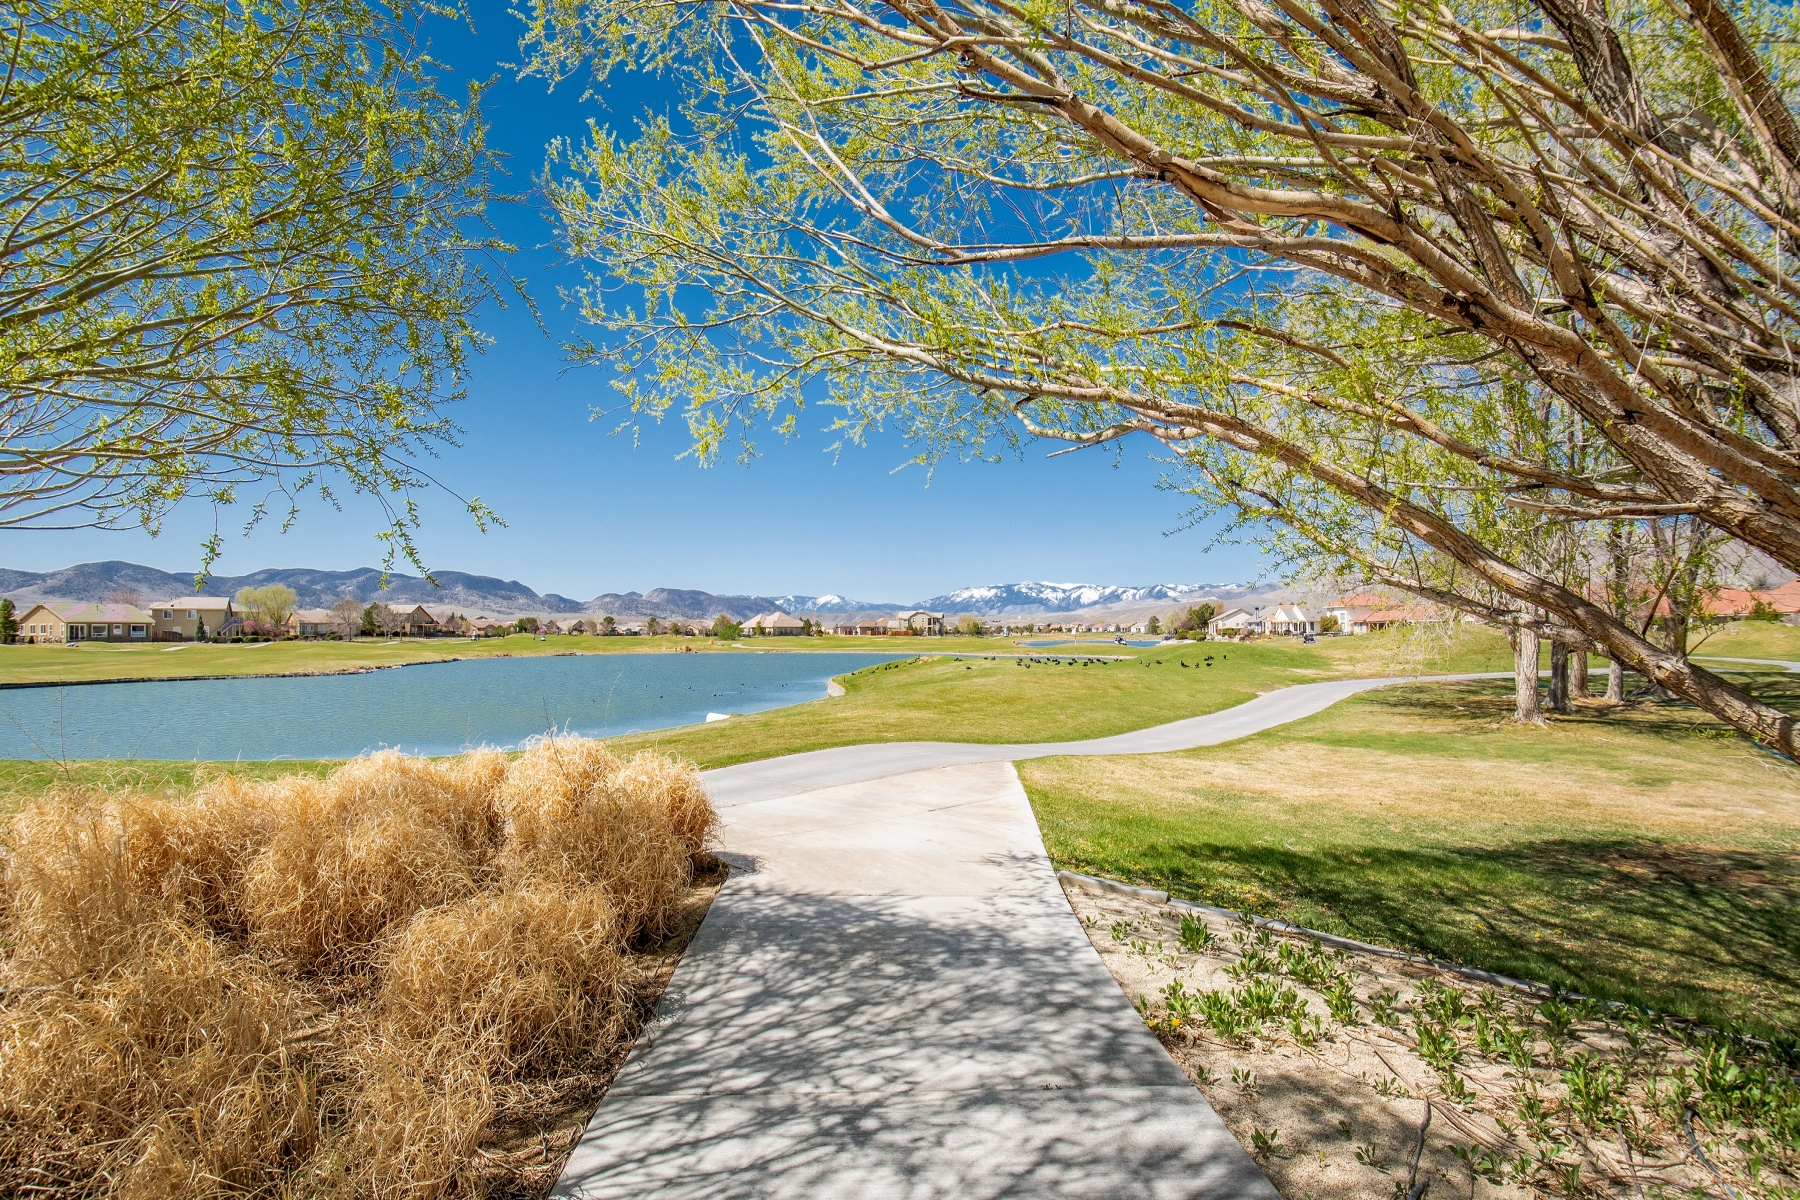 Additional photo for property listing at 366 Bayhill Circle, Dayton, Nevada 366 Bayhill Circle Dayton, Nevada 89403 United States